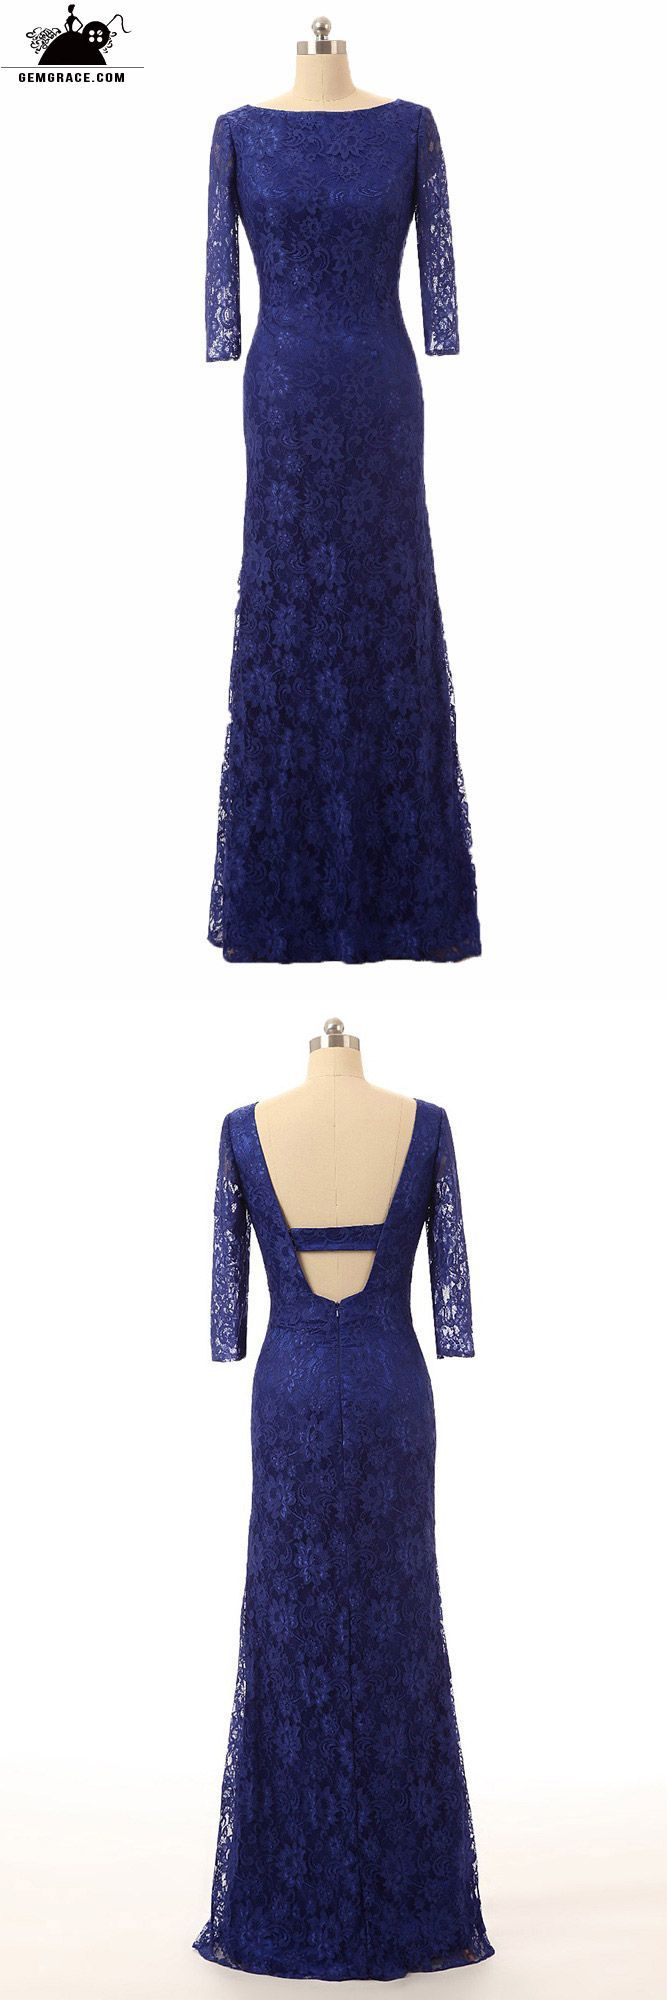 Formal royal blue lace long evening mother of the bride dress with